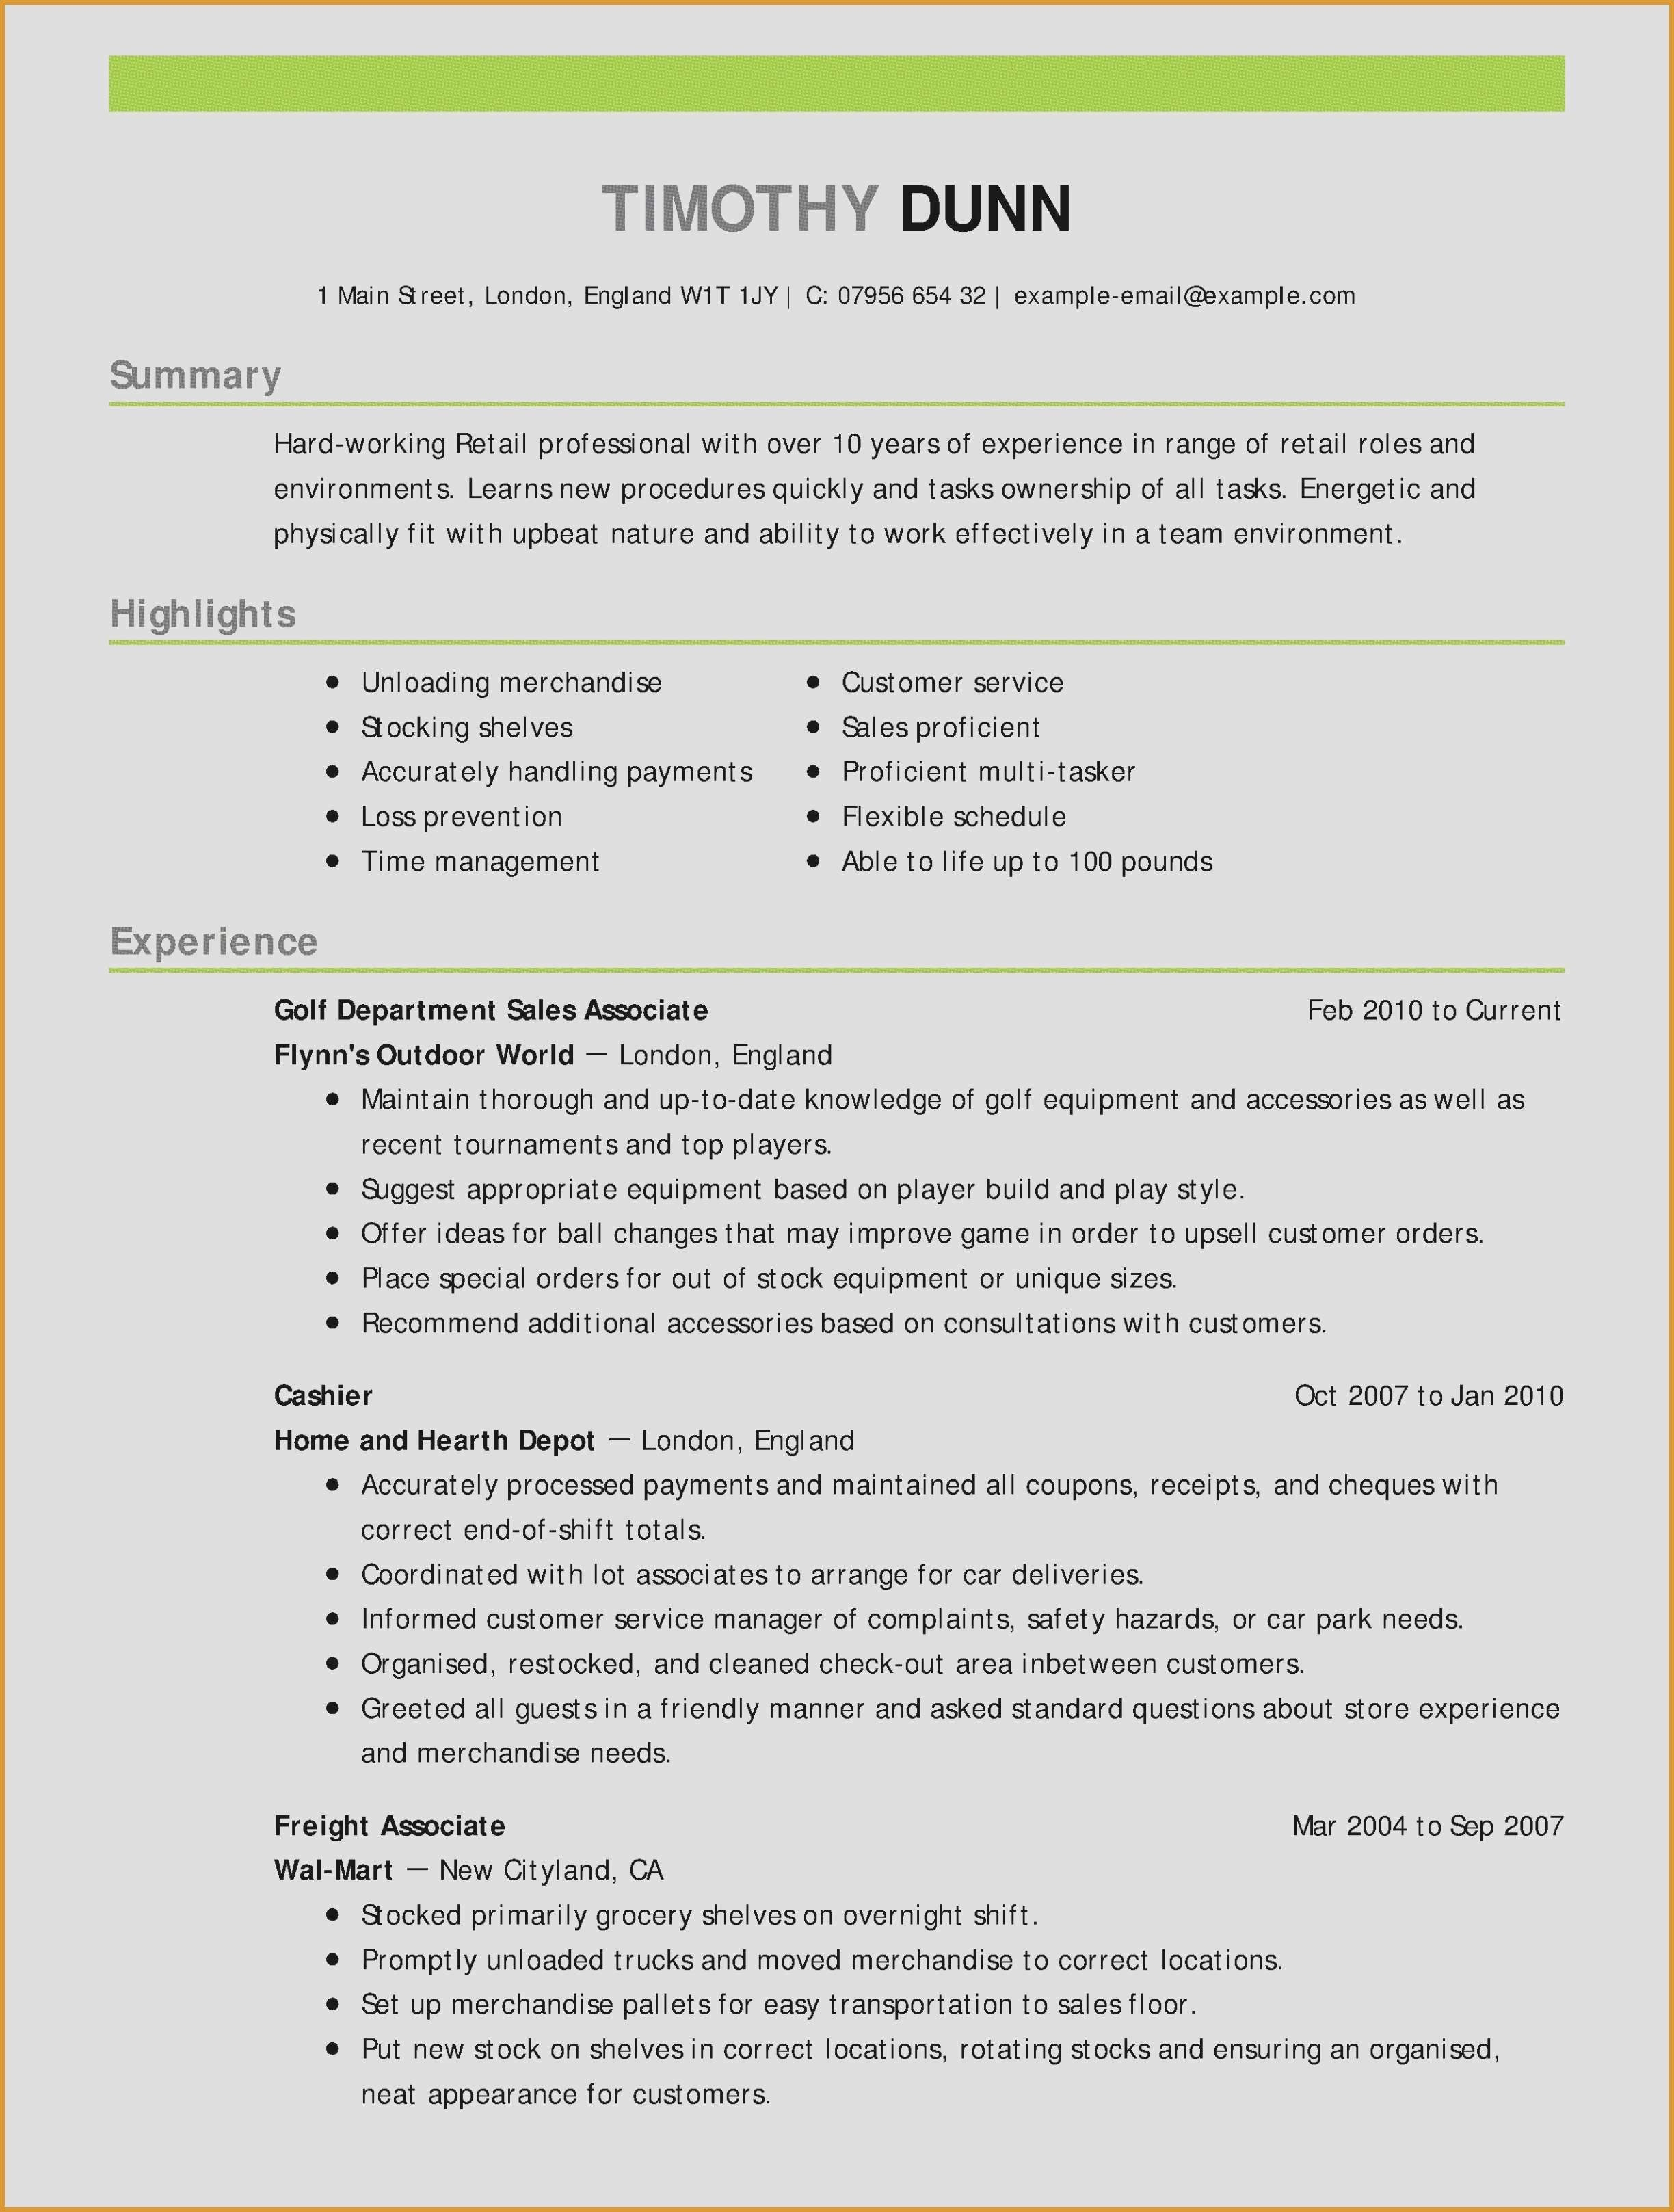 Skills Words - Skill Words for Resume Inspirational 24 Lovely Strong Resume Words